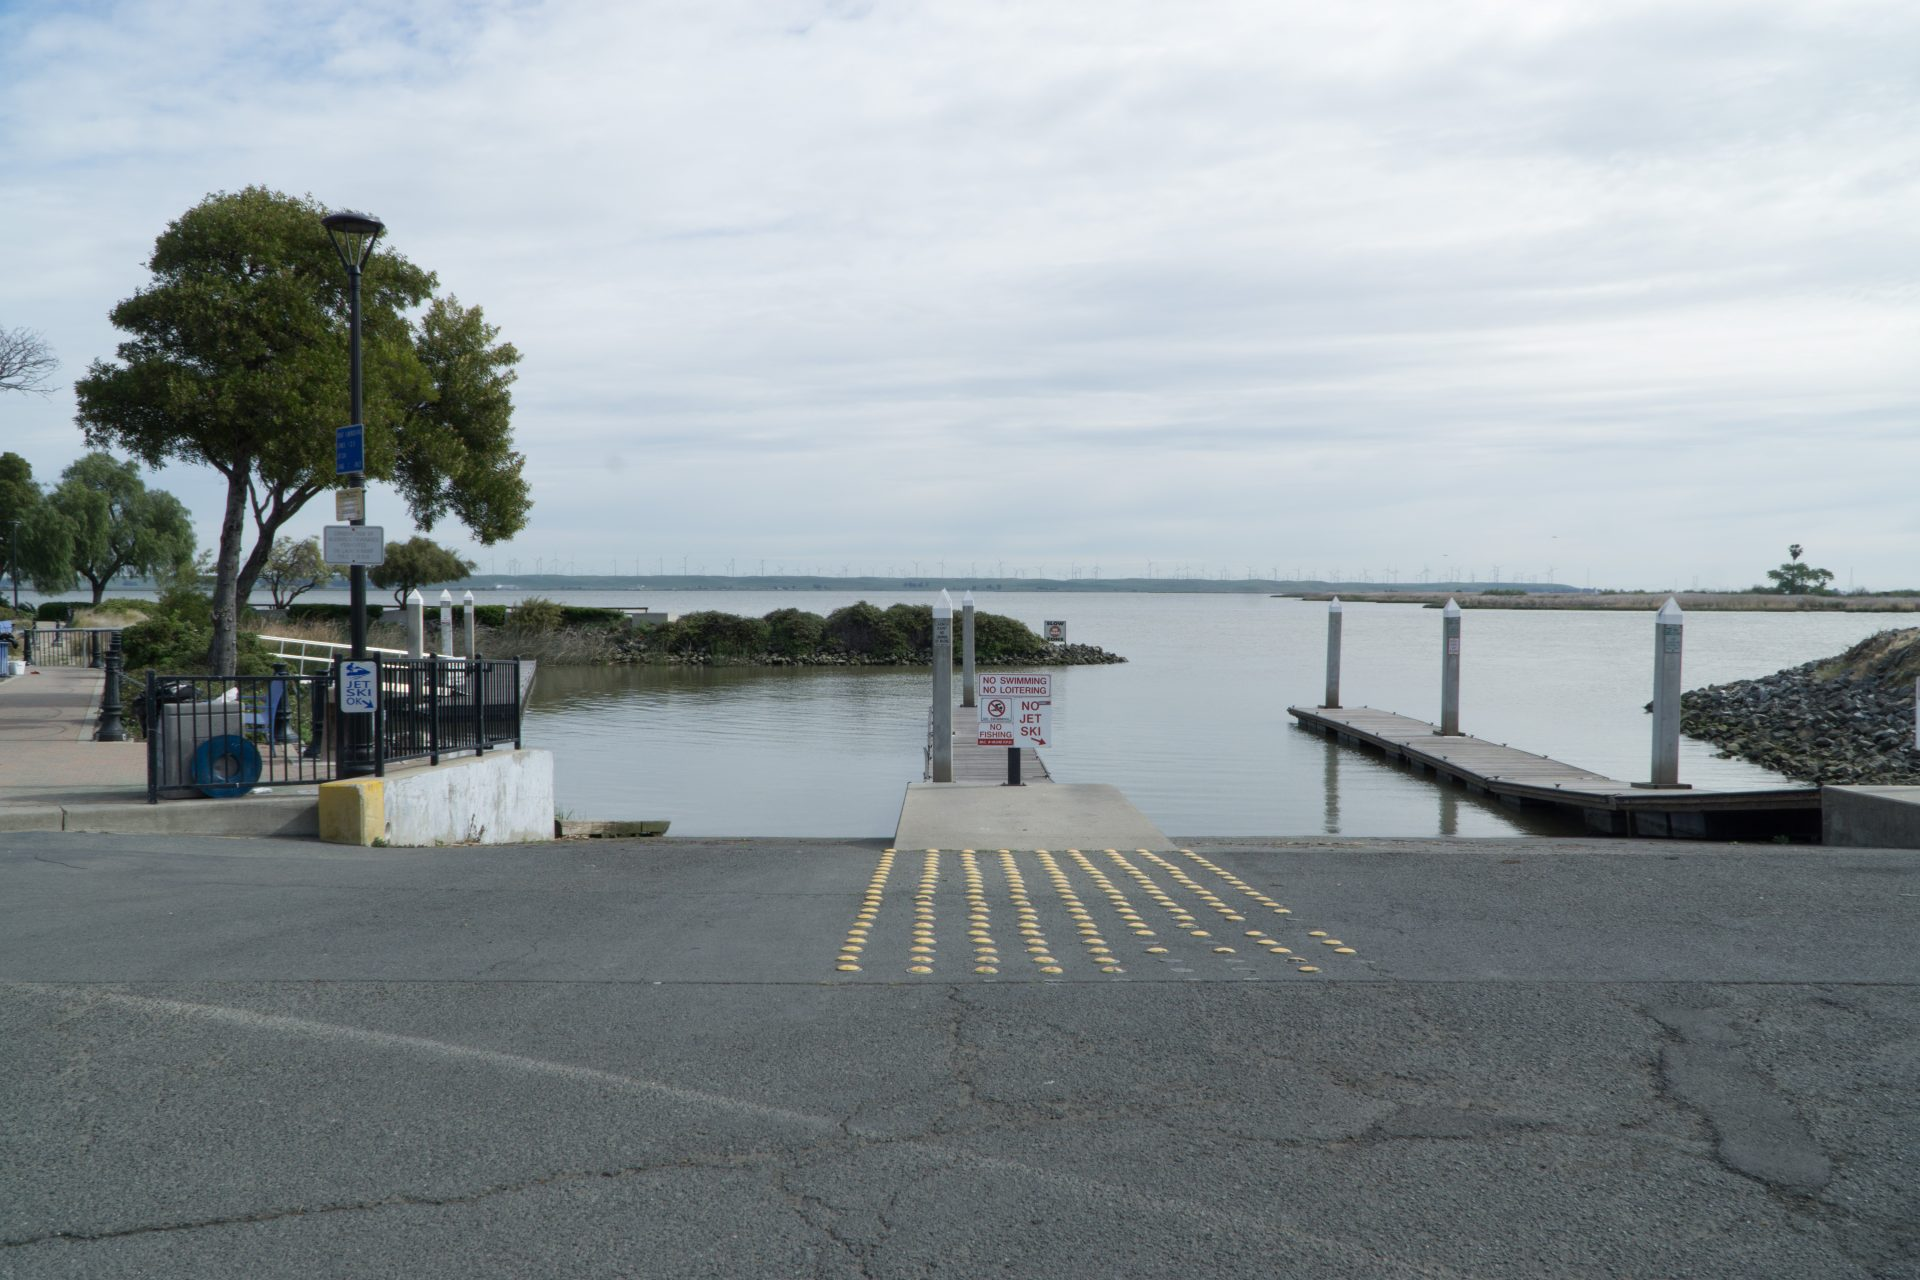 large paved boat launch descends into water